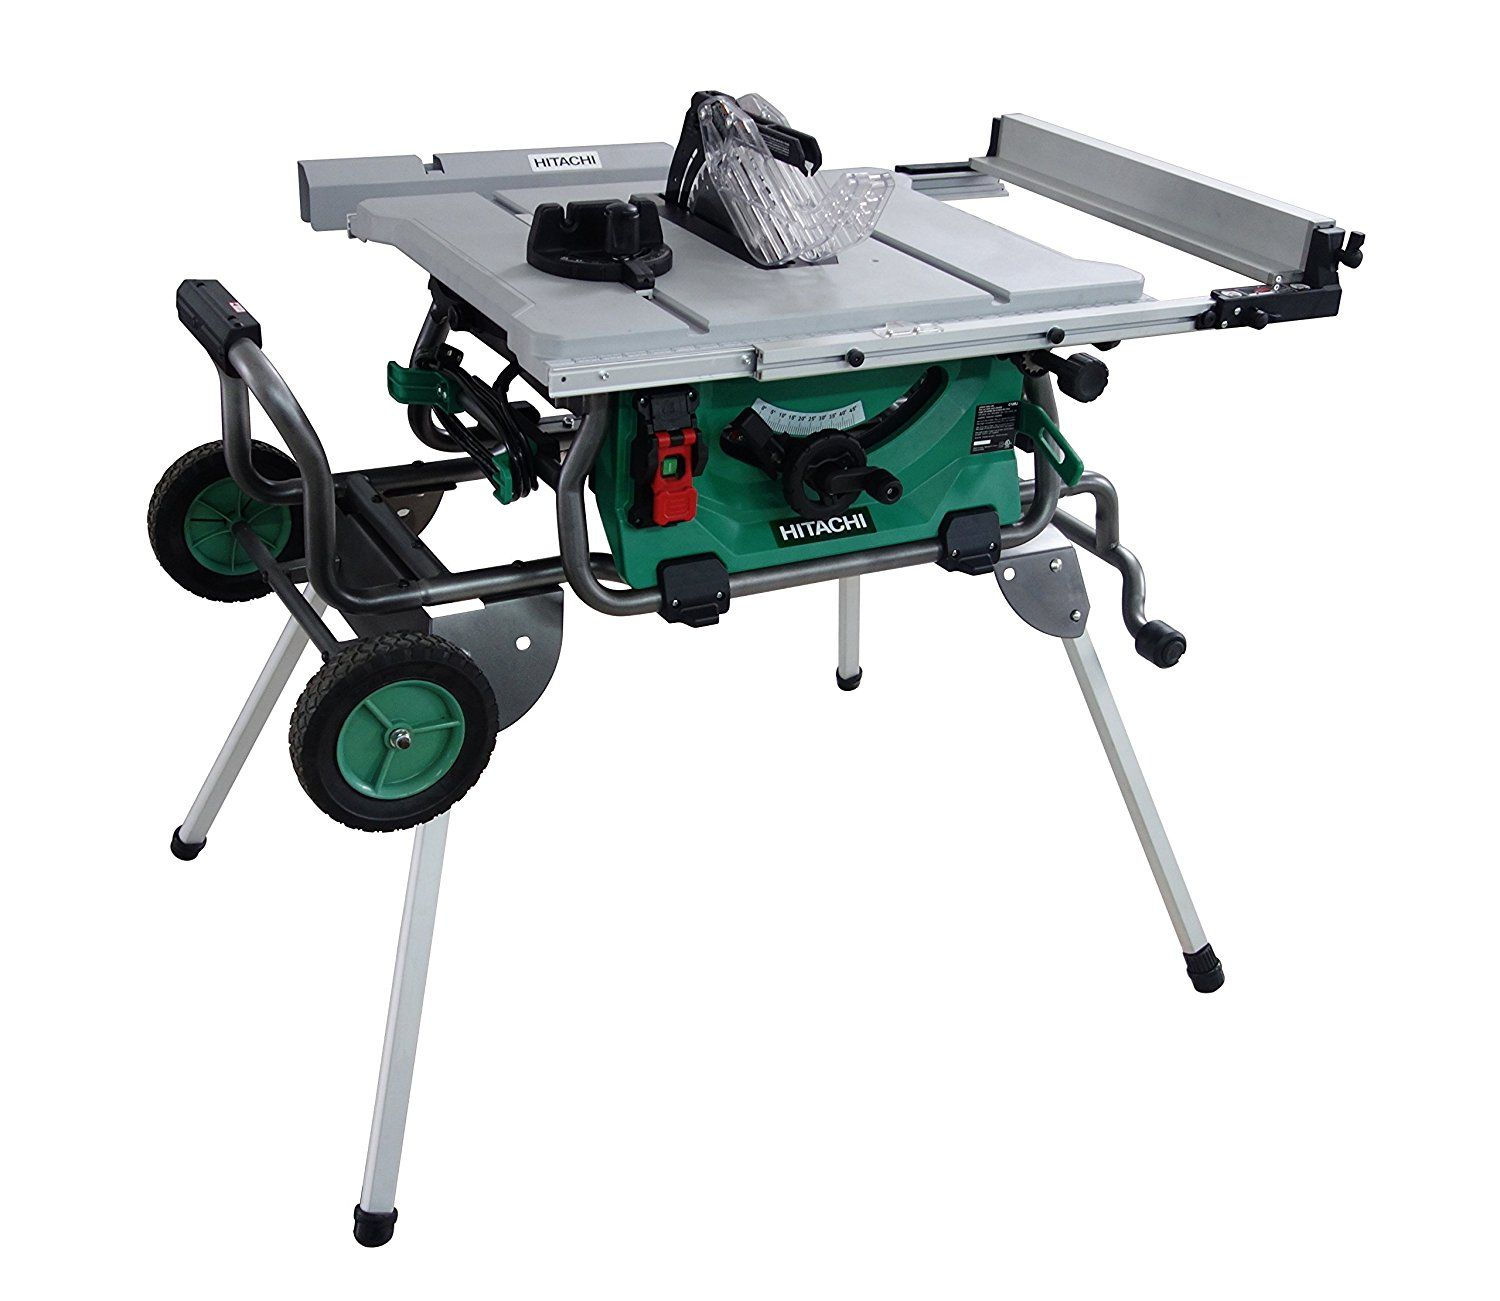 Portable table saw reviews tests and comparisons greentooth Gallery